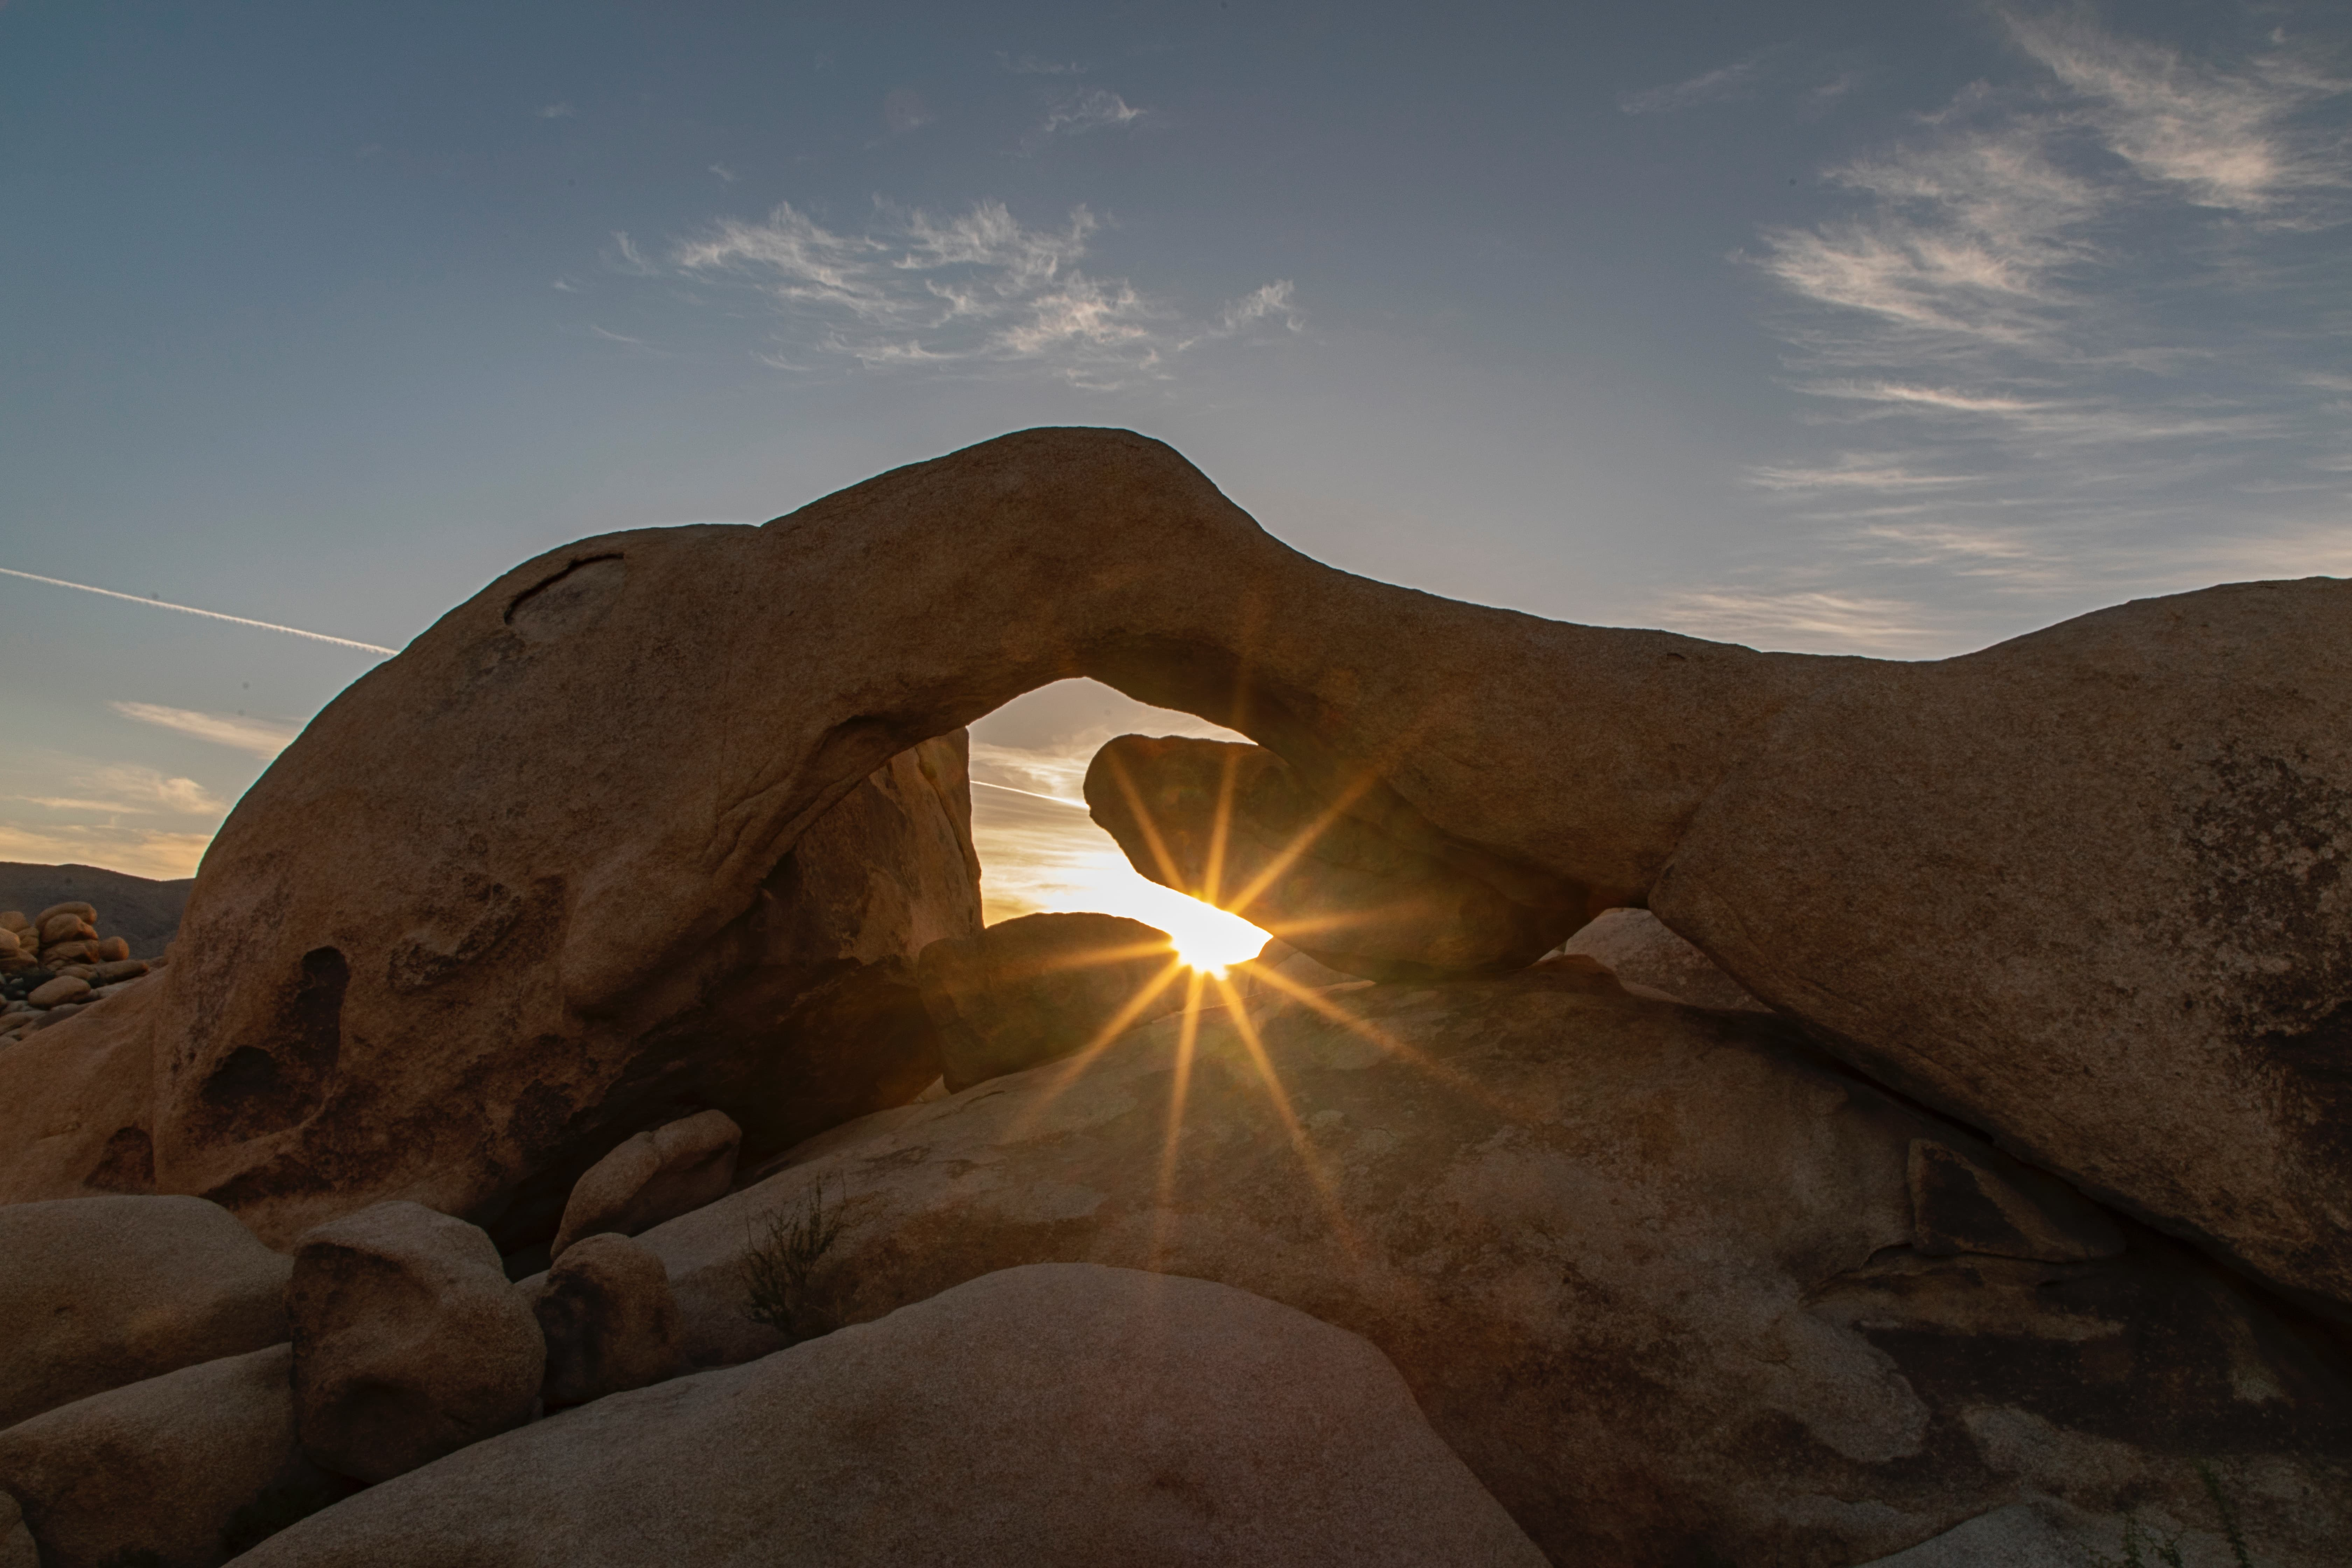 Arch Rock at sunset